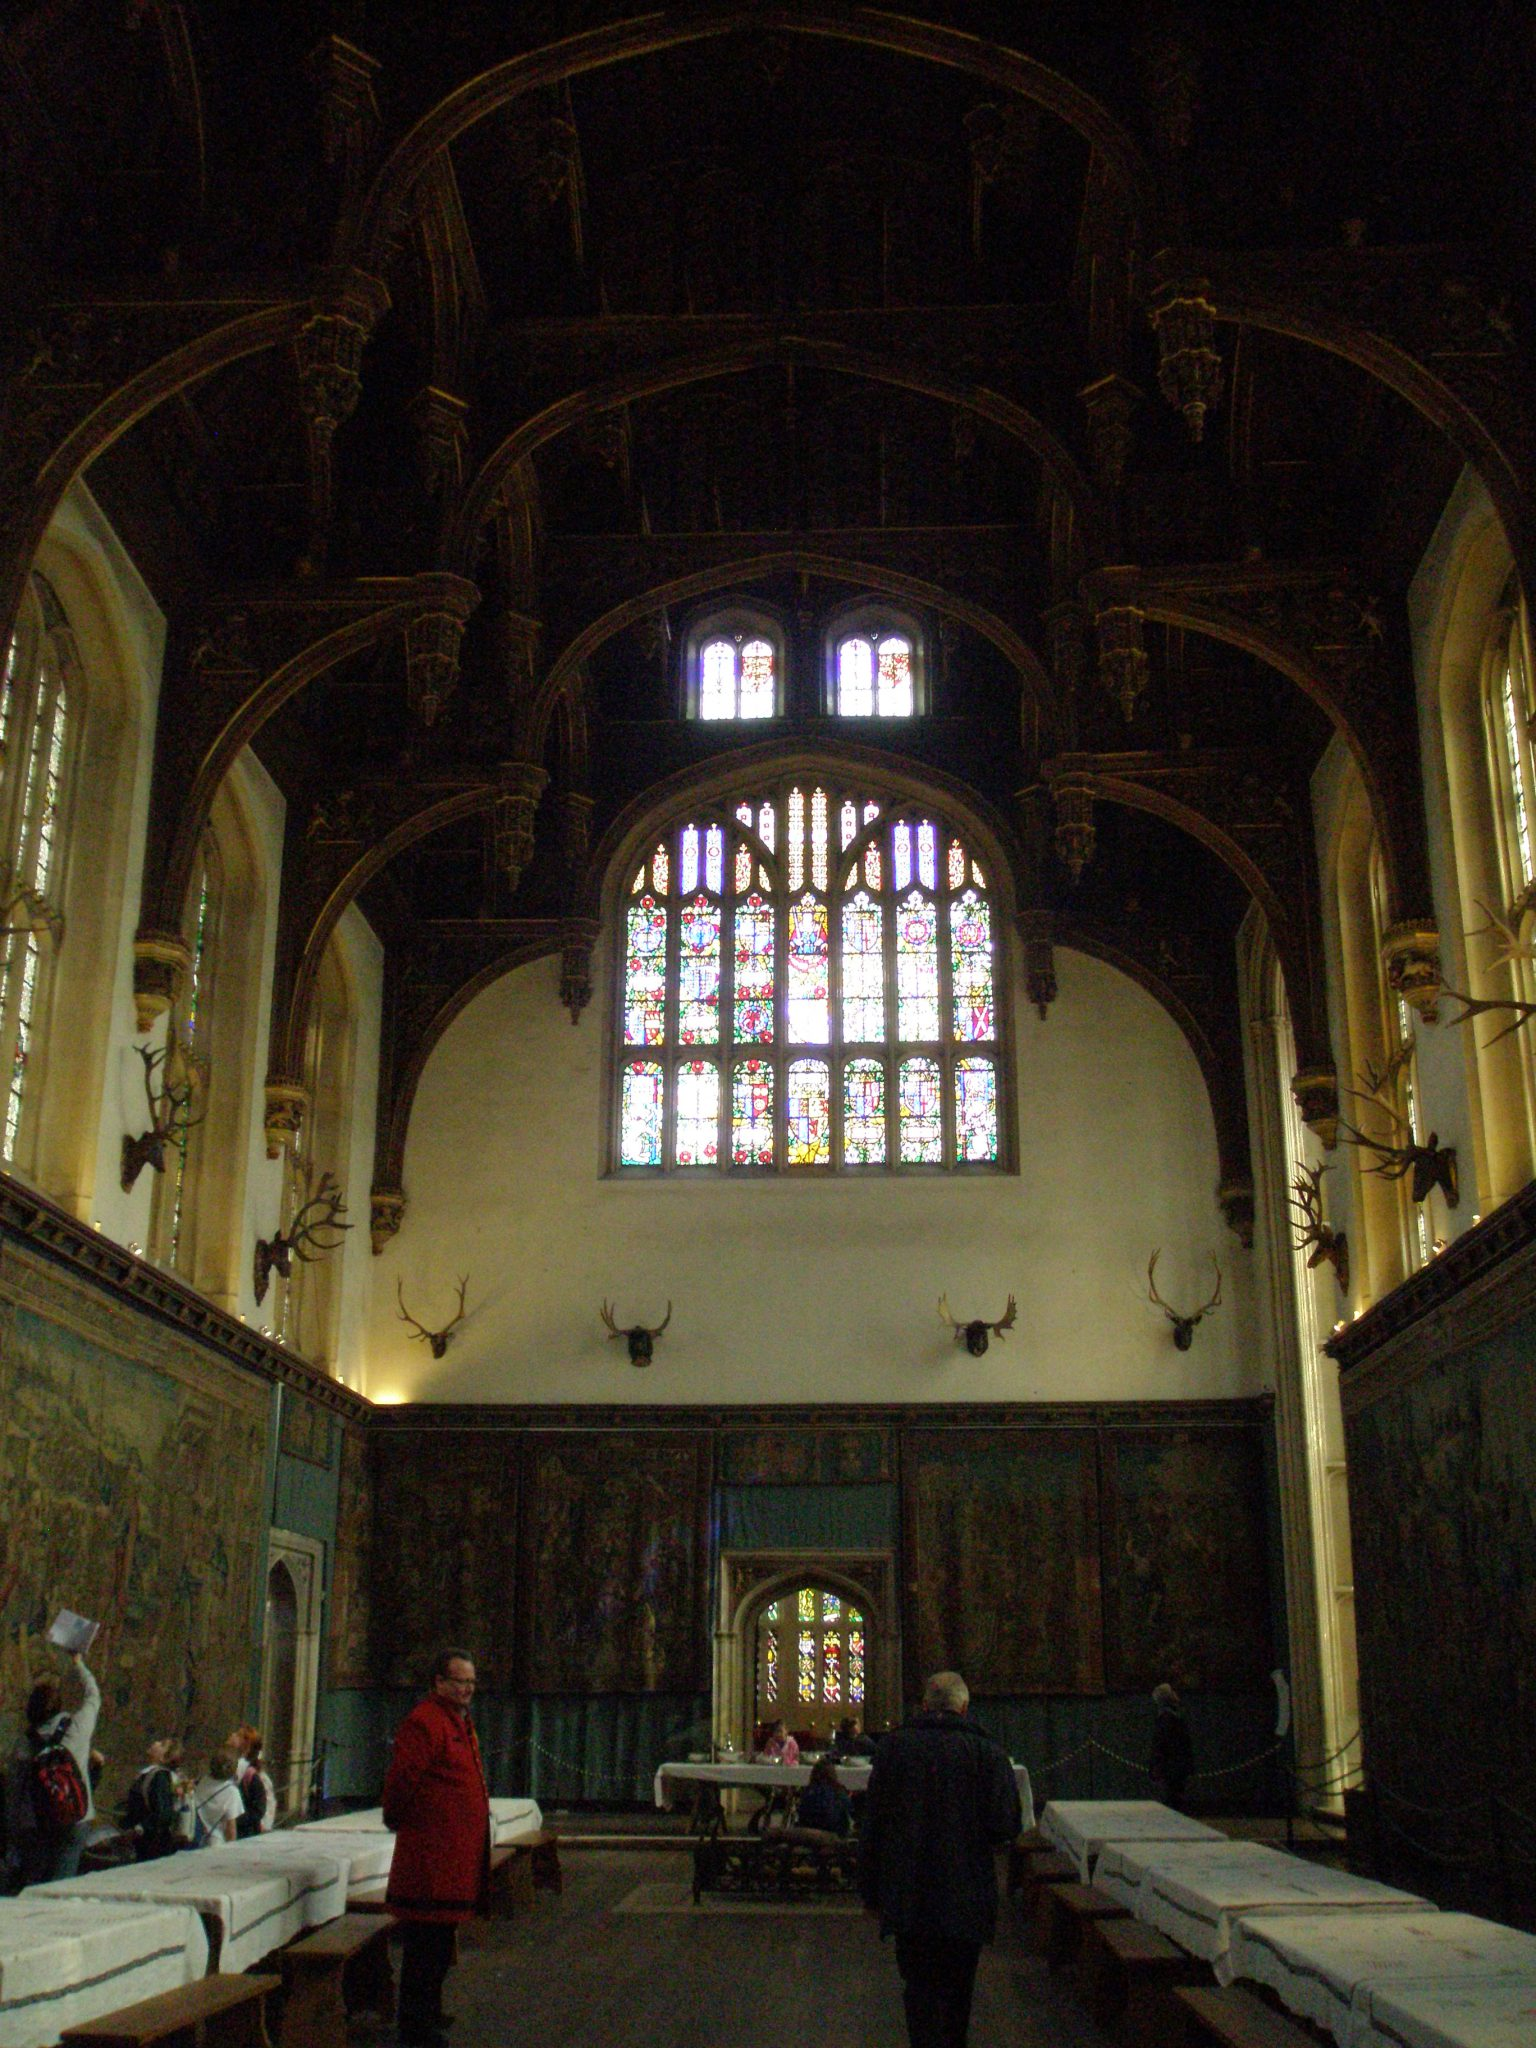 The Great Hall, in Henry VIII's Apartments